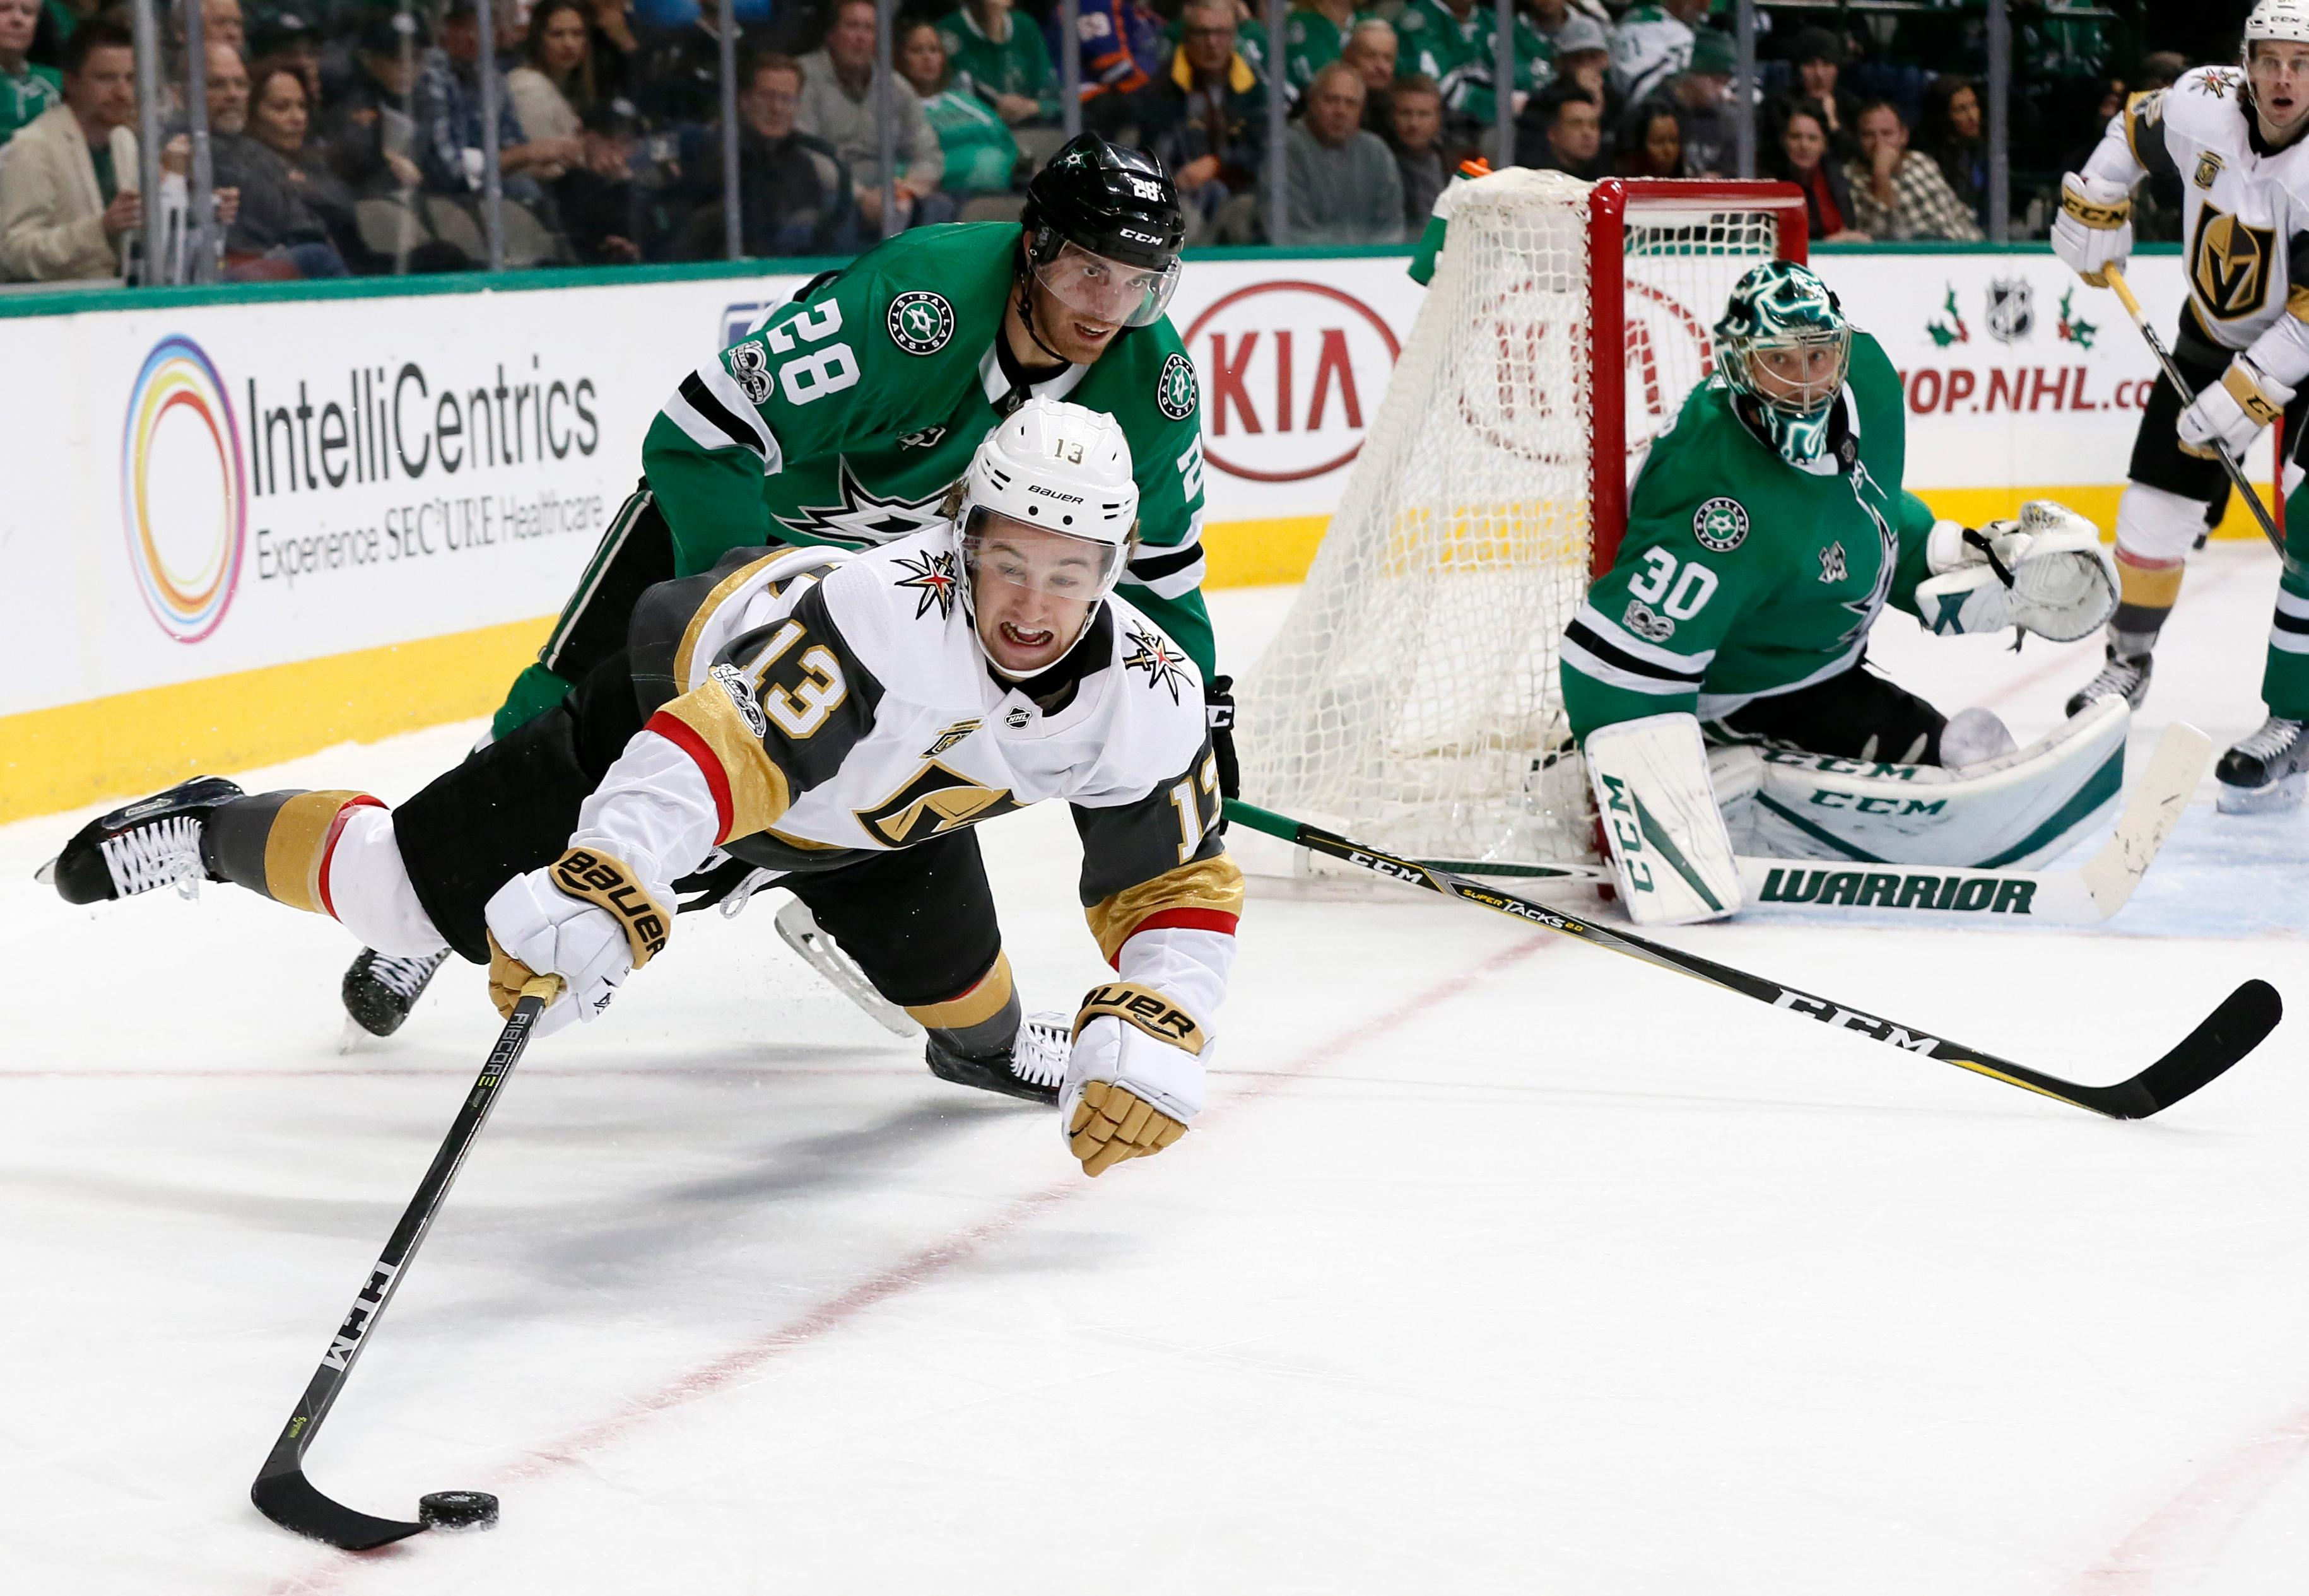 Vegas Golden Knights left wing Brendan Leipsic (13) falls while tyring to control the puck, after being tripped by Dallas Stars' Stephen Johns (28), as goalie Ben Bishop (30) watches during the second period of an NHL hockey game, Saturday, Dec. 9, 2017, in Dallas (AP Photo/Tony Gutierrez)